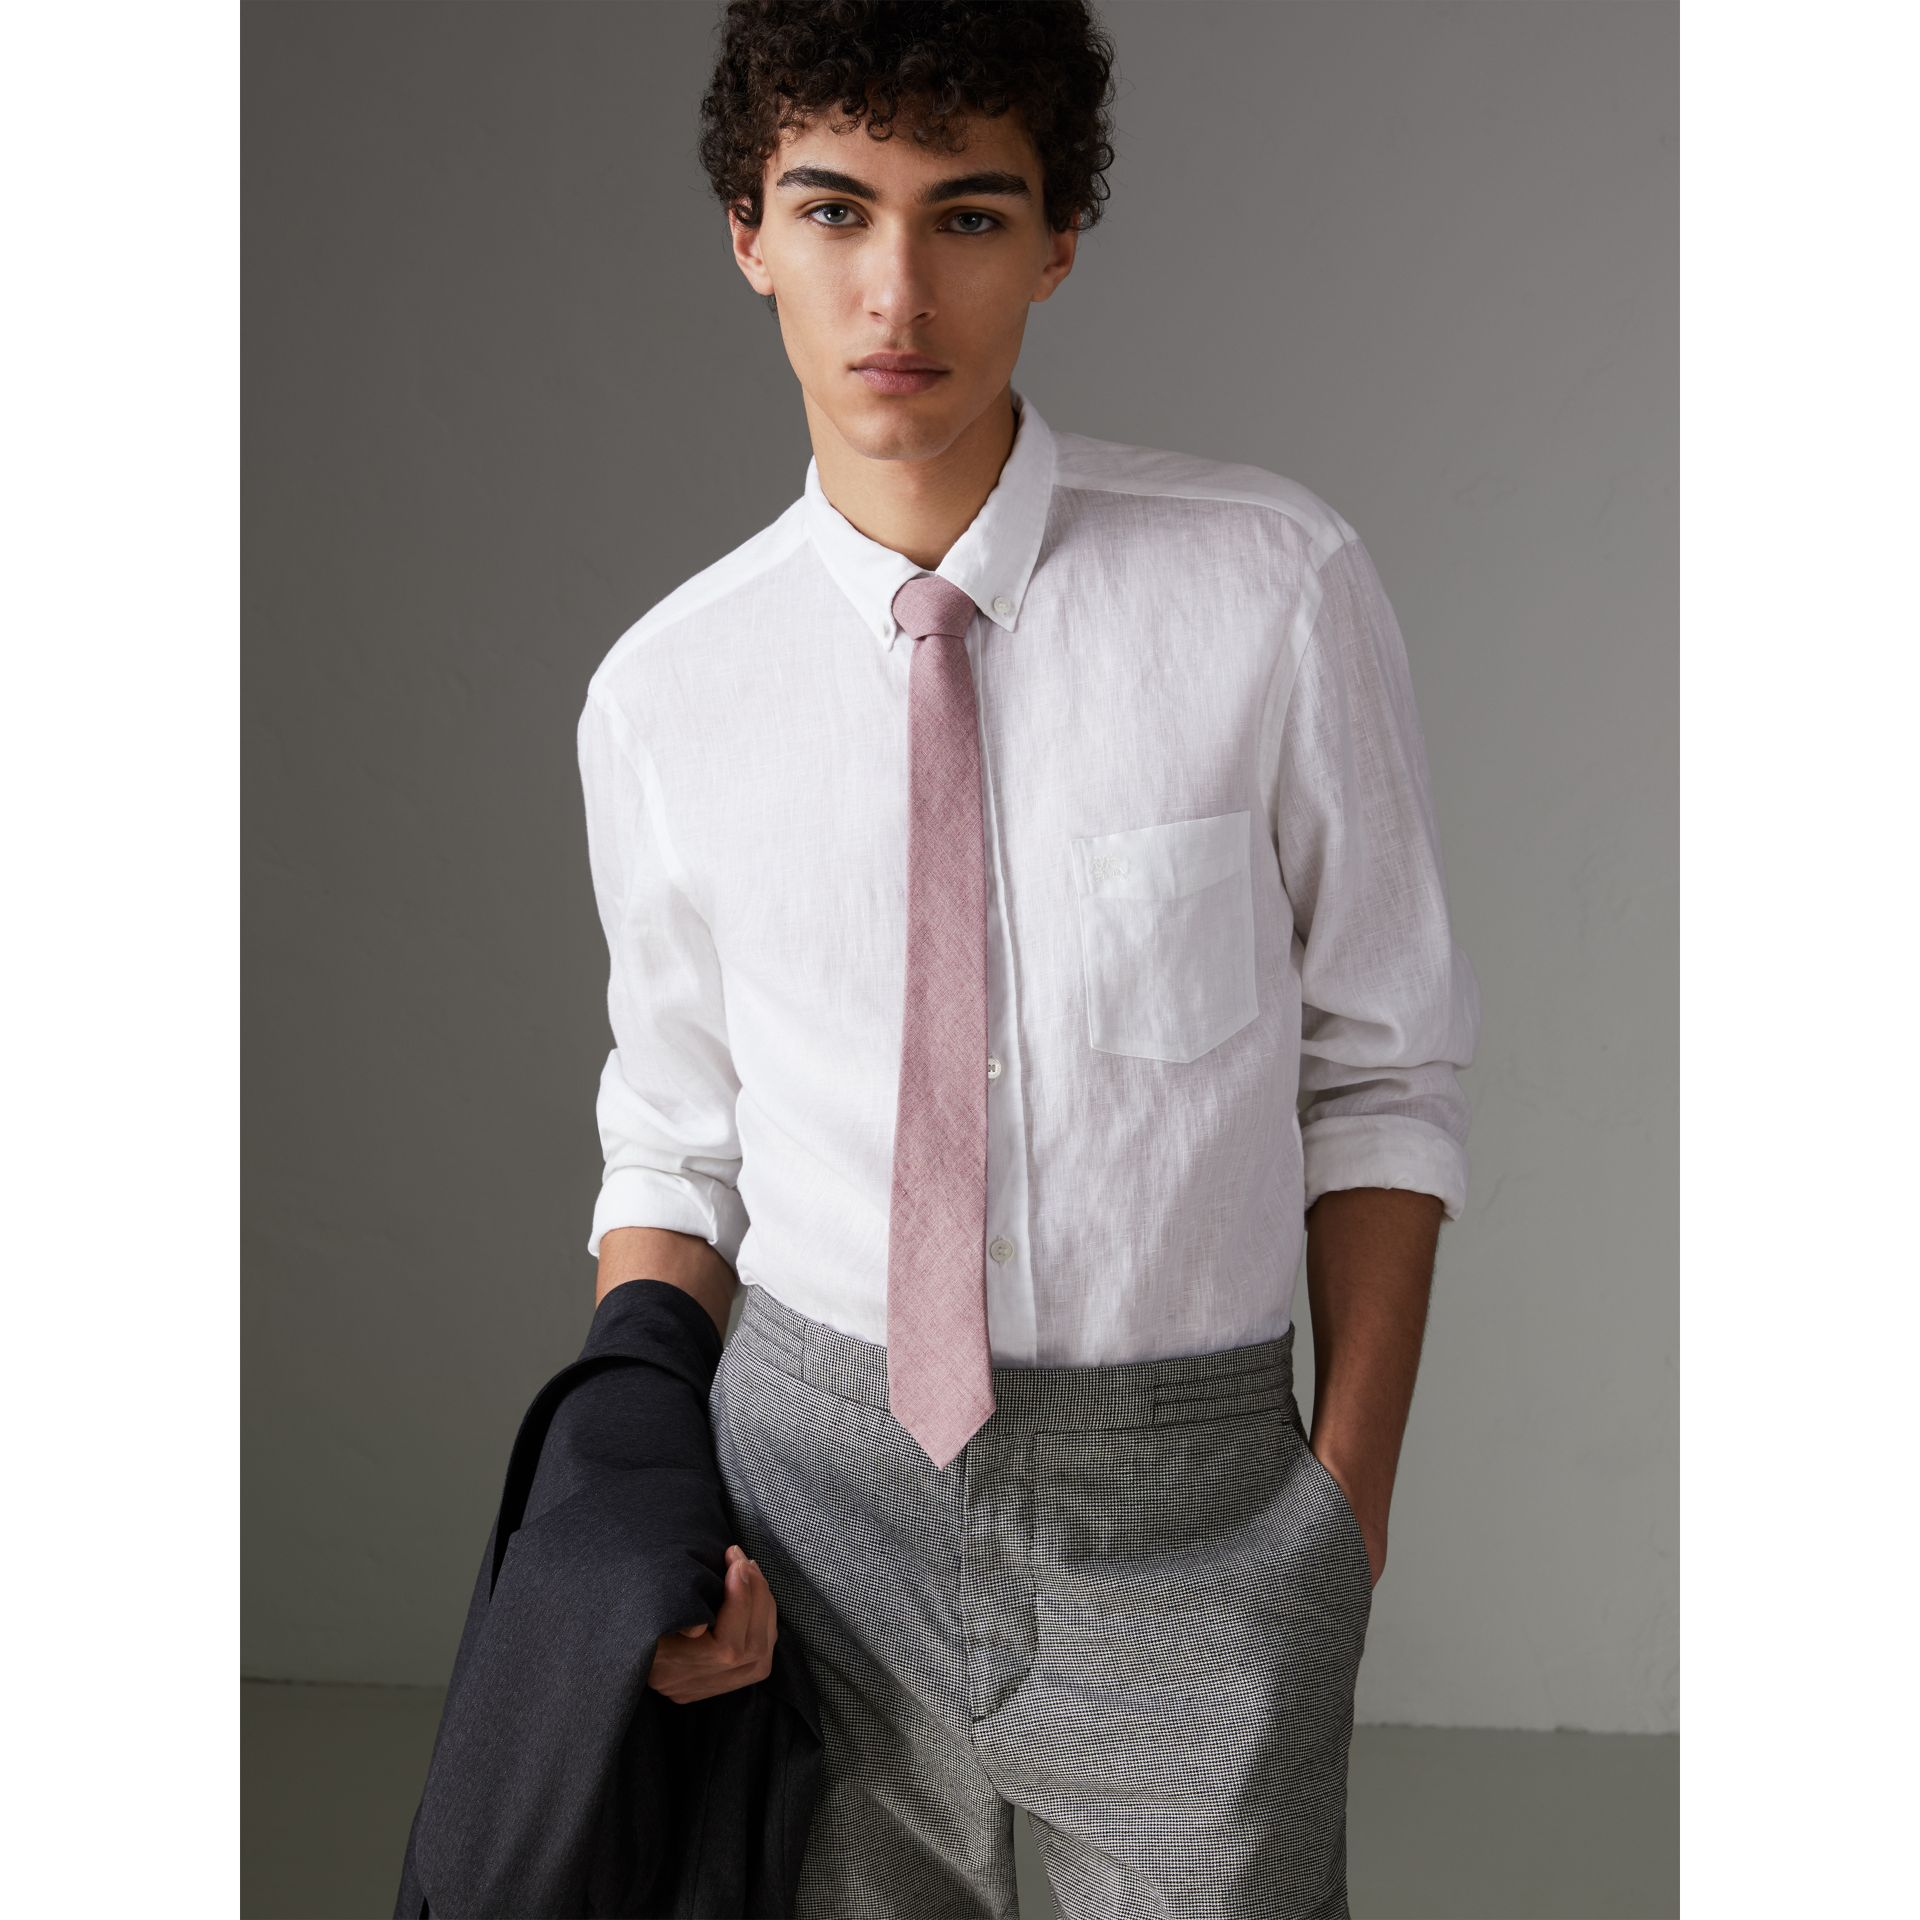 Slim Cut Linen Tie in Pink Heather - Men | Burberry - gallery image 2